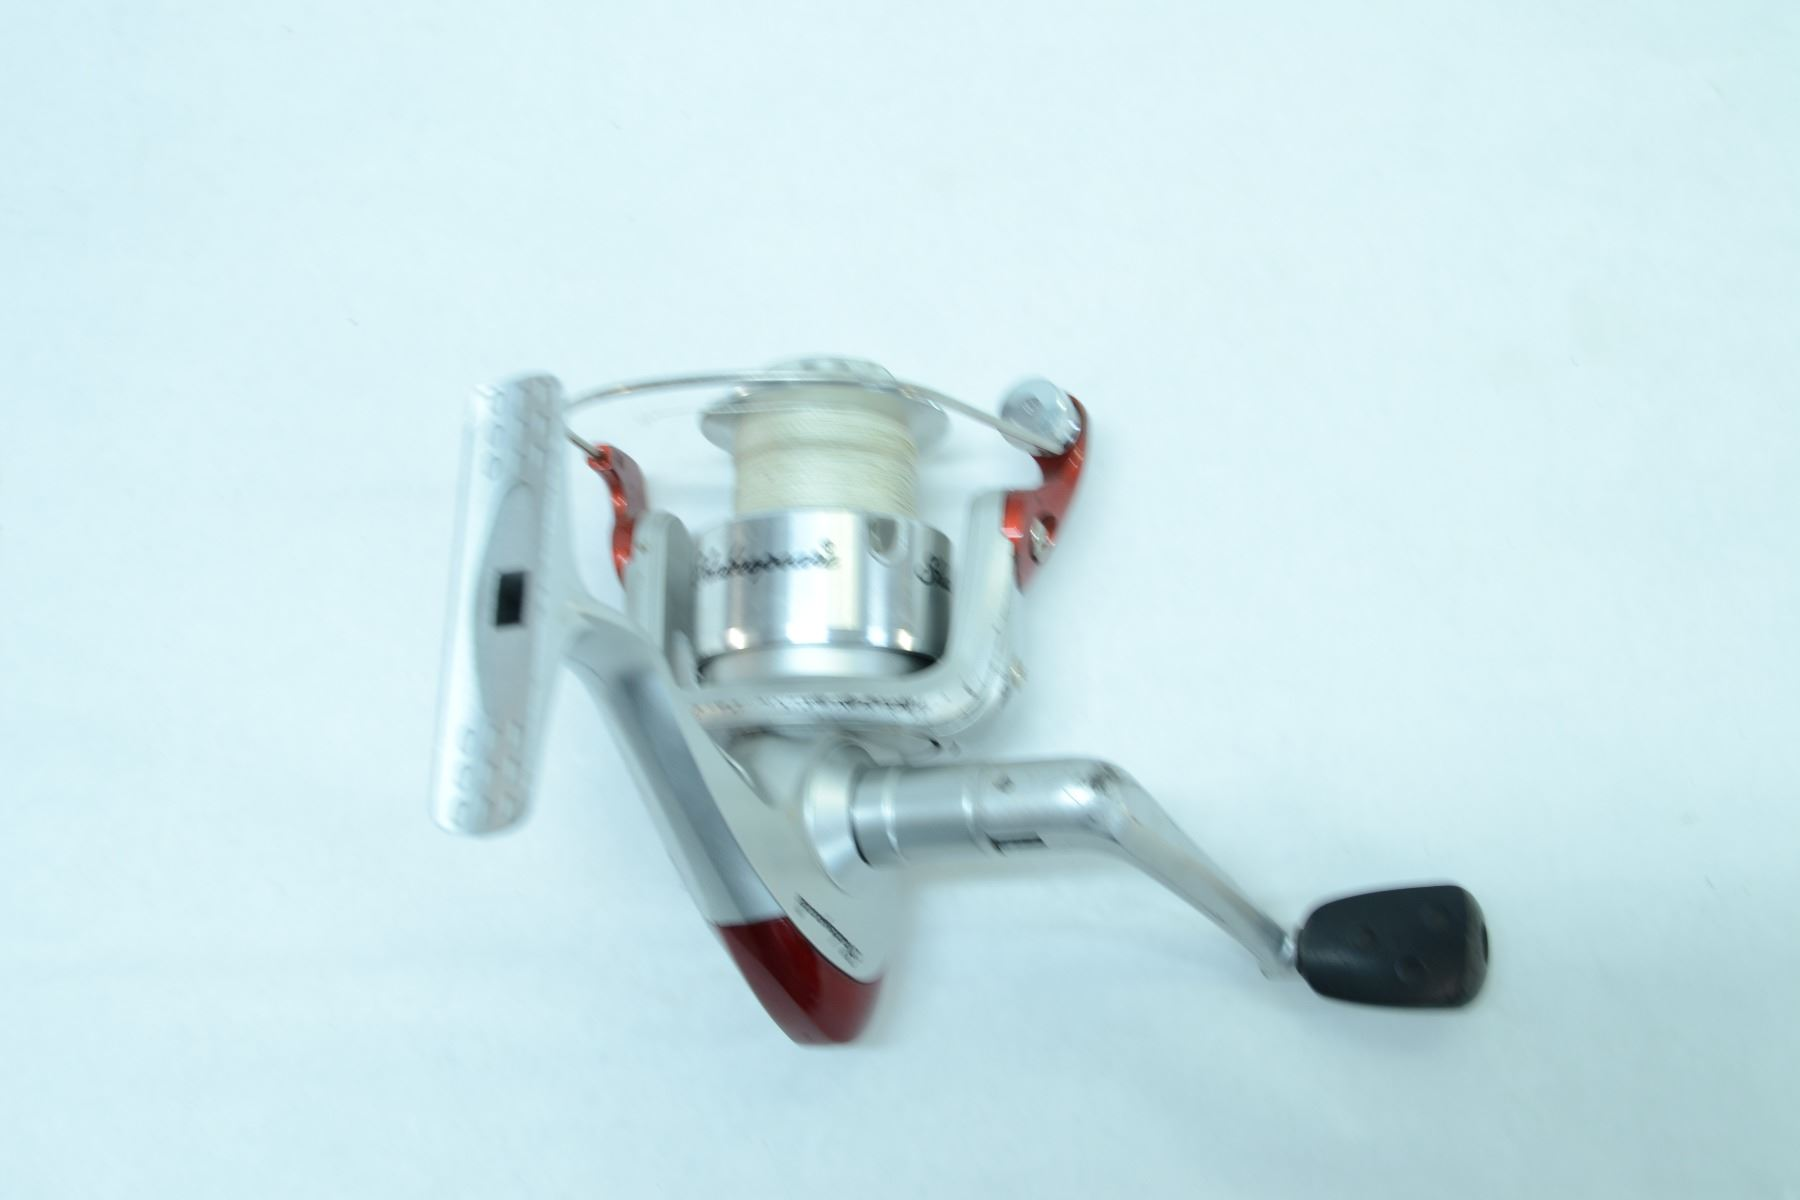 Shakespeare Bsp35 Reel Replacement Parts - Year of Clean Water